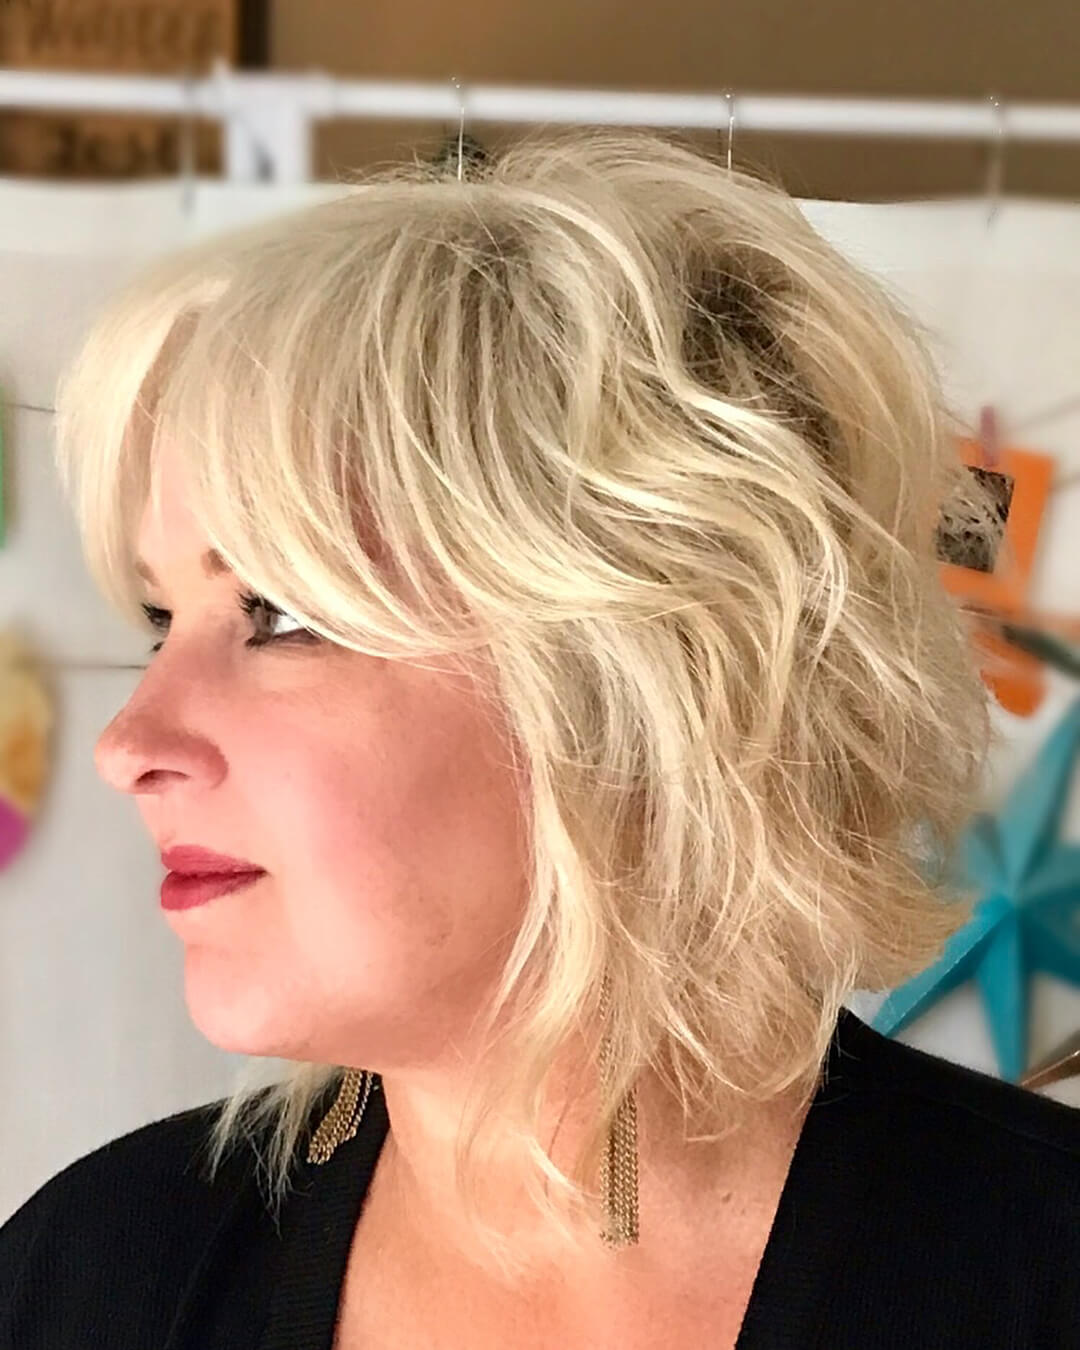 https://zhurnal-lady.com/wp-content/uploads/2019/12/shaggy-hairstyles-for-women-over-50-7.jpg